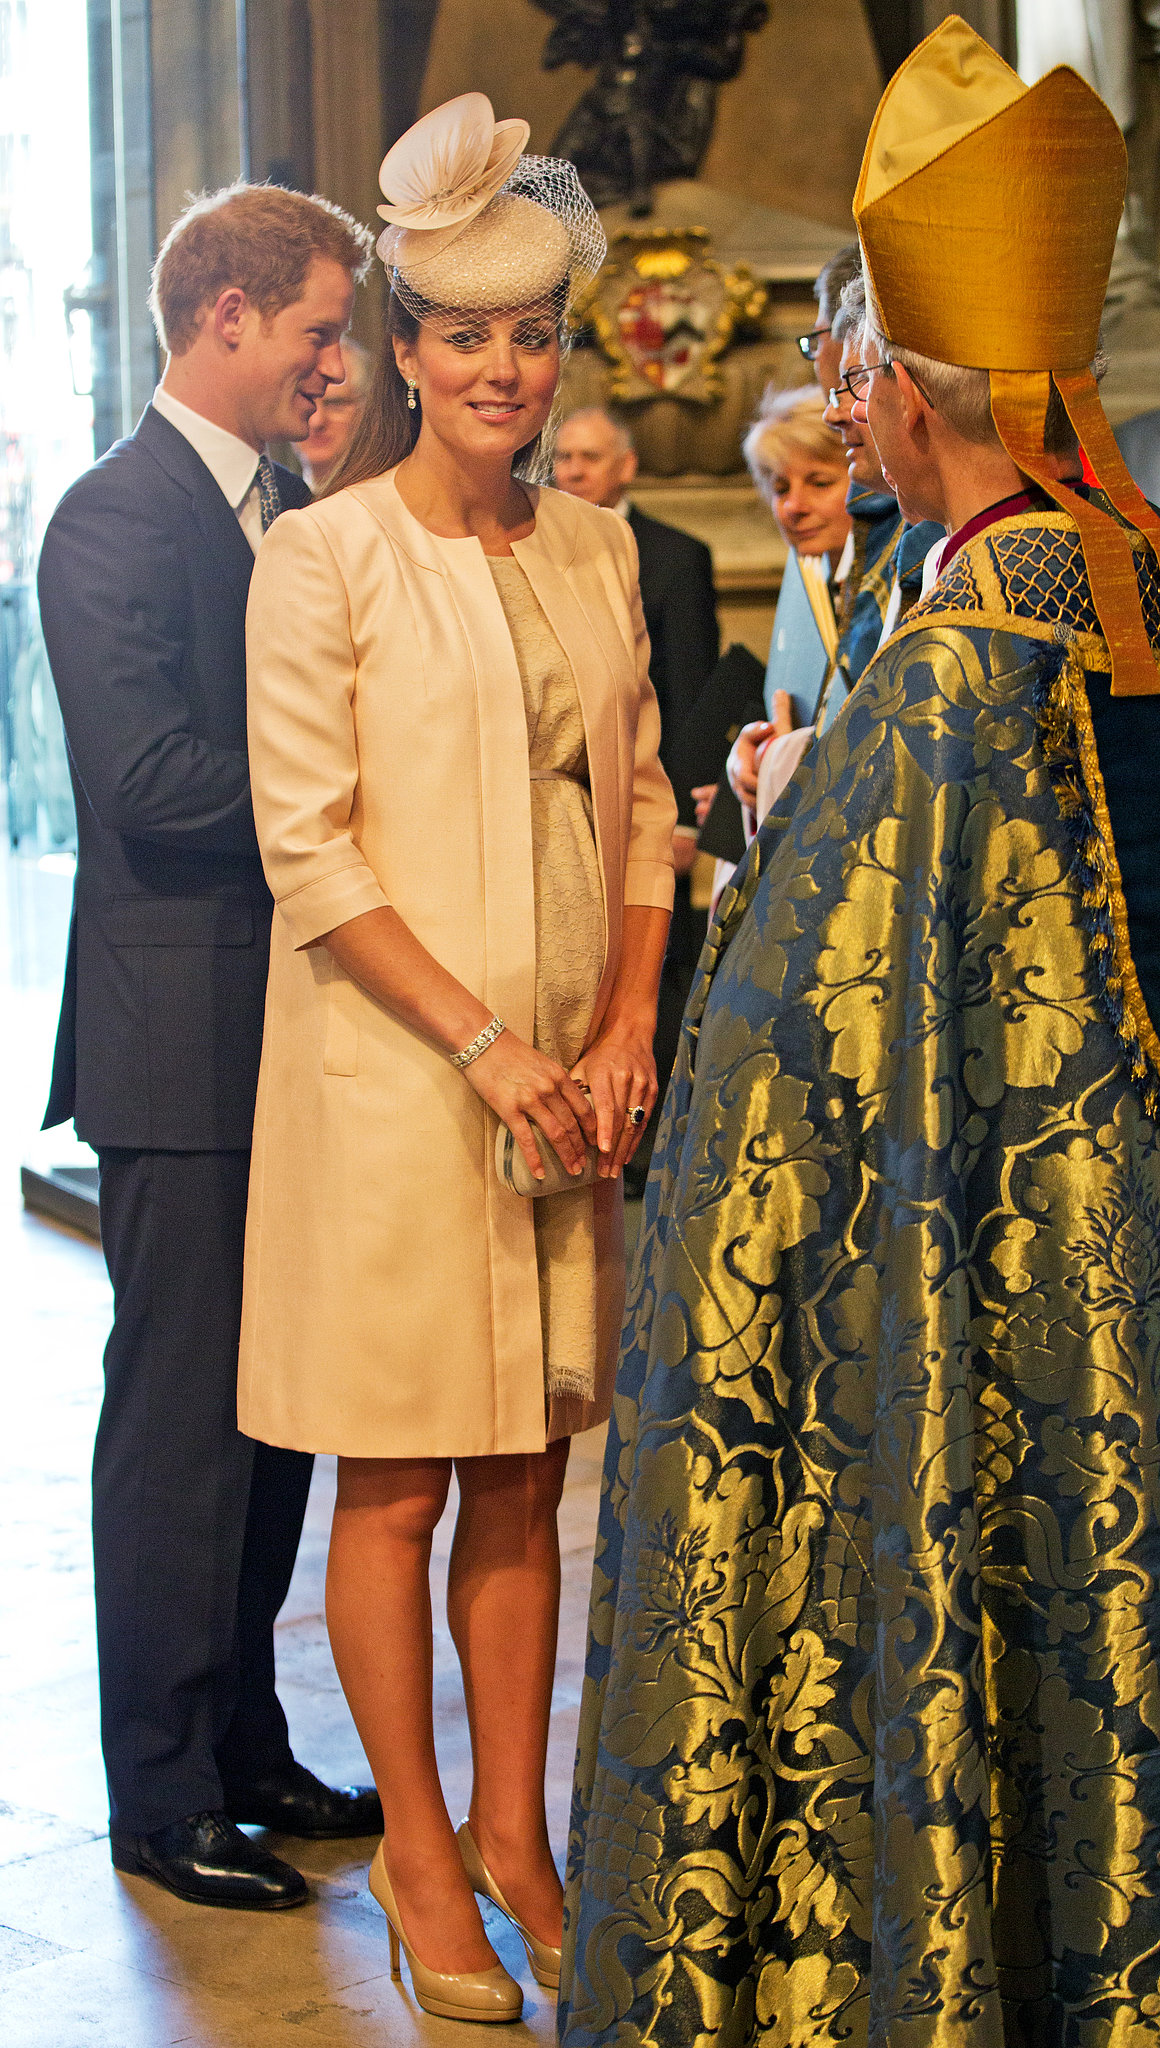 She attended Queen Elizabeth II's 60th coronation anniversary service at Westminster Abbey in London in June 2013.